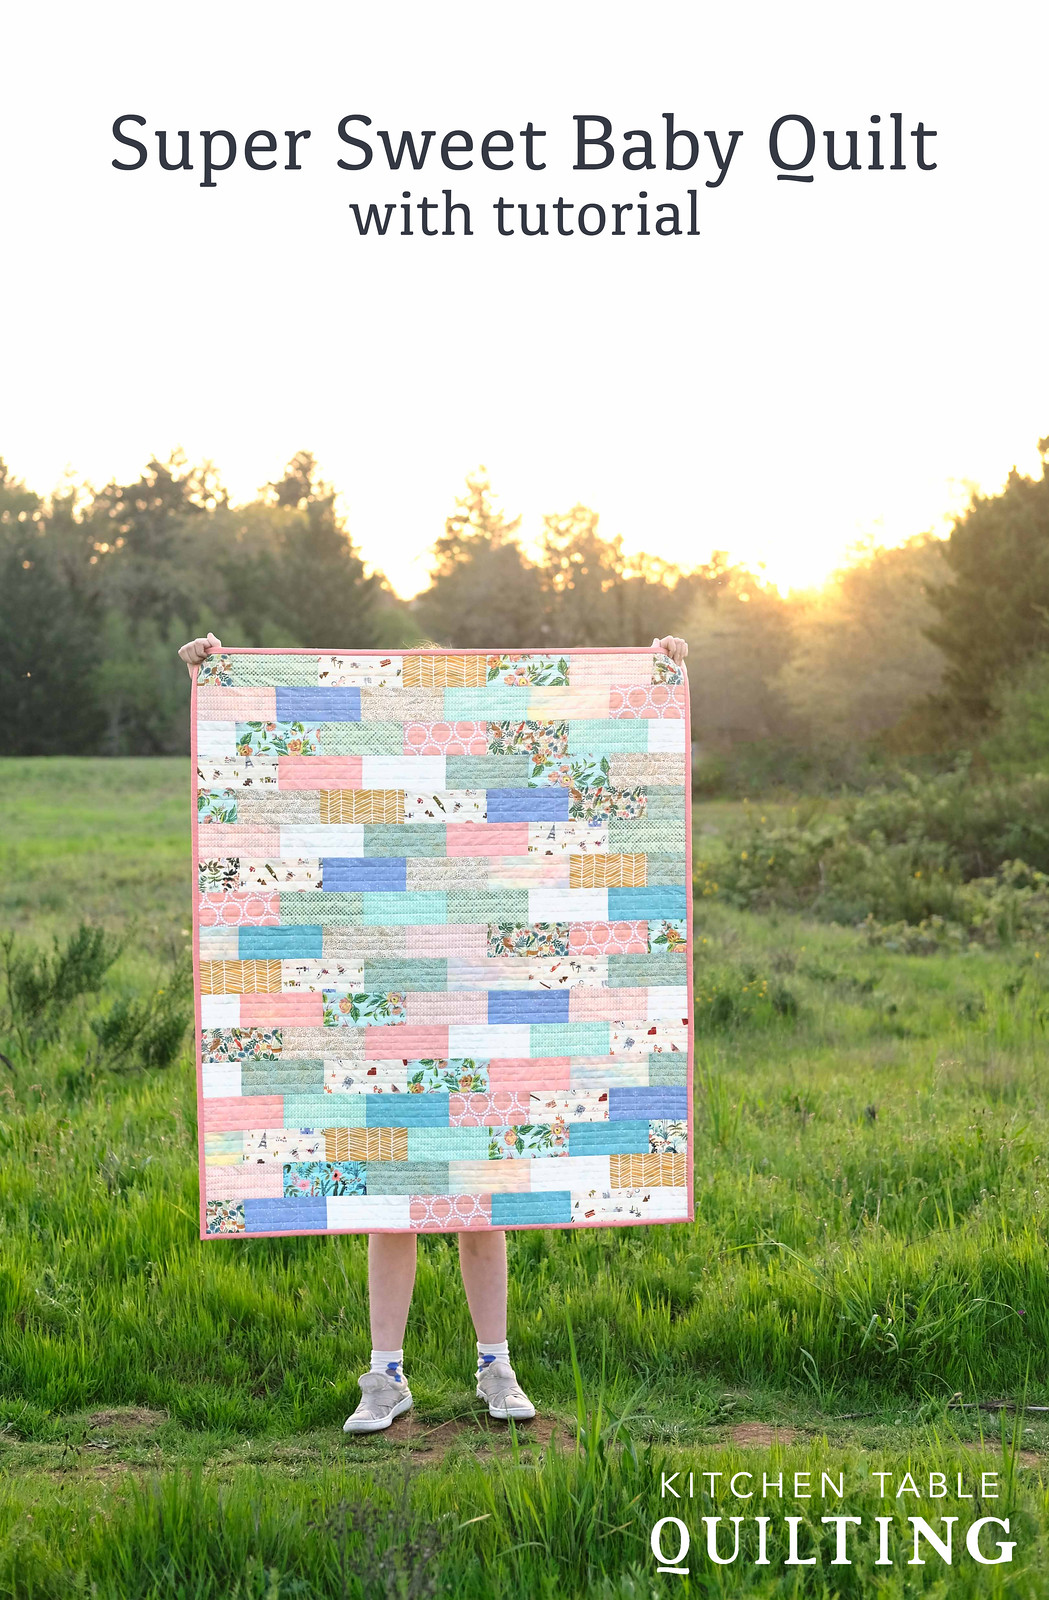 Super Sweet Baby Quilt - Kitchen Table Quilting